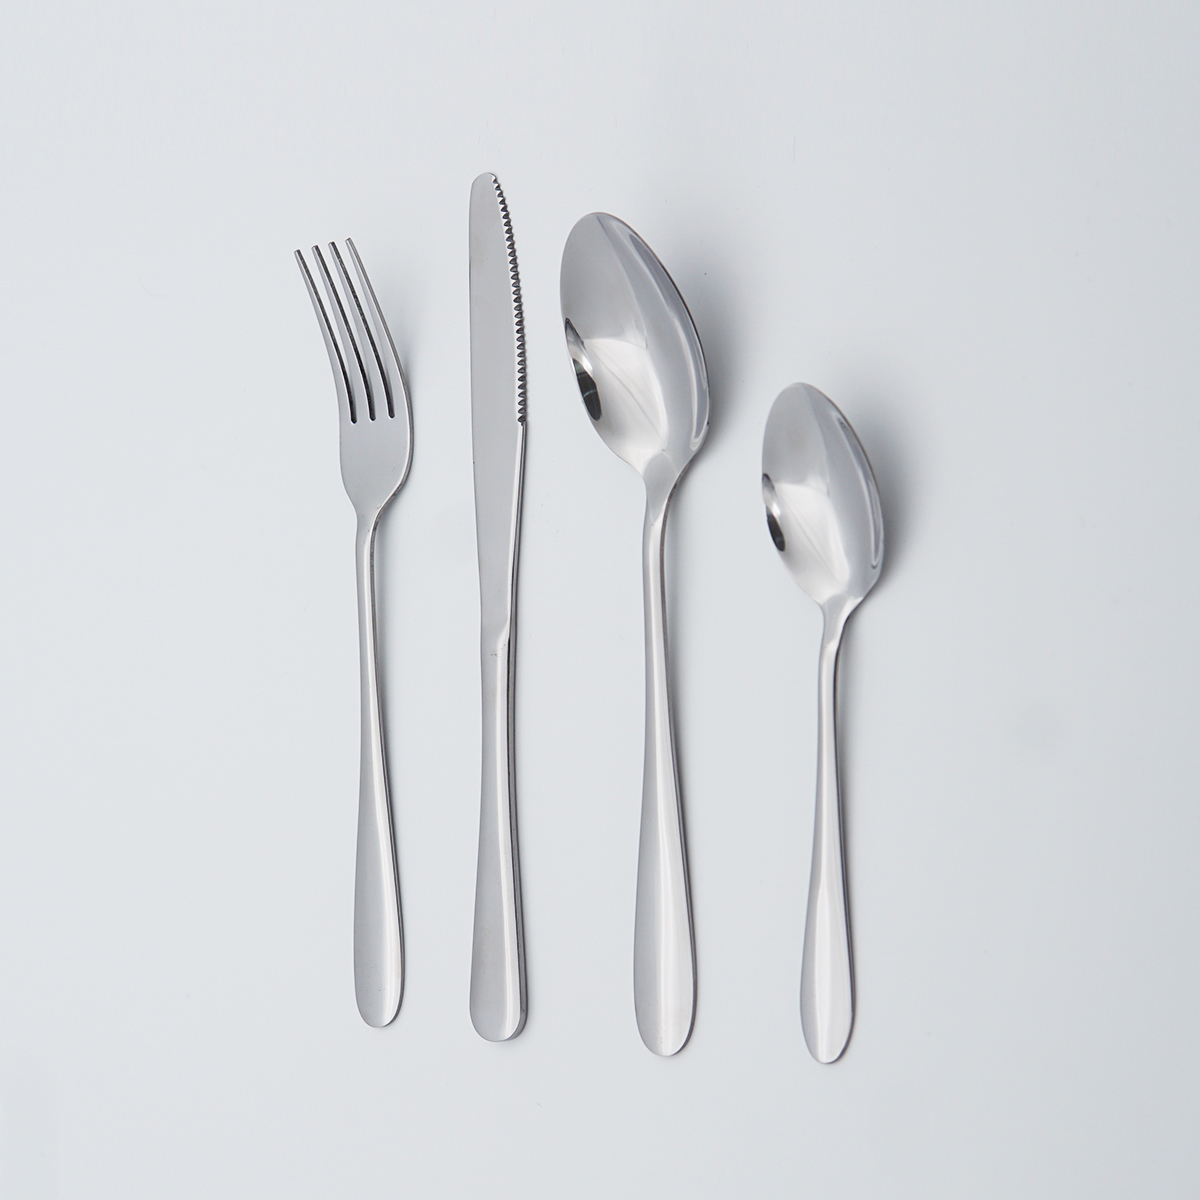 Wholesale Food Grade Silverware Spoons Forks and Knives for Events 18/8 Stainless Steel Flatware Set